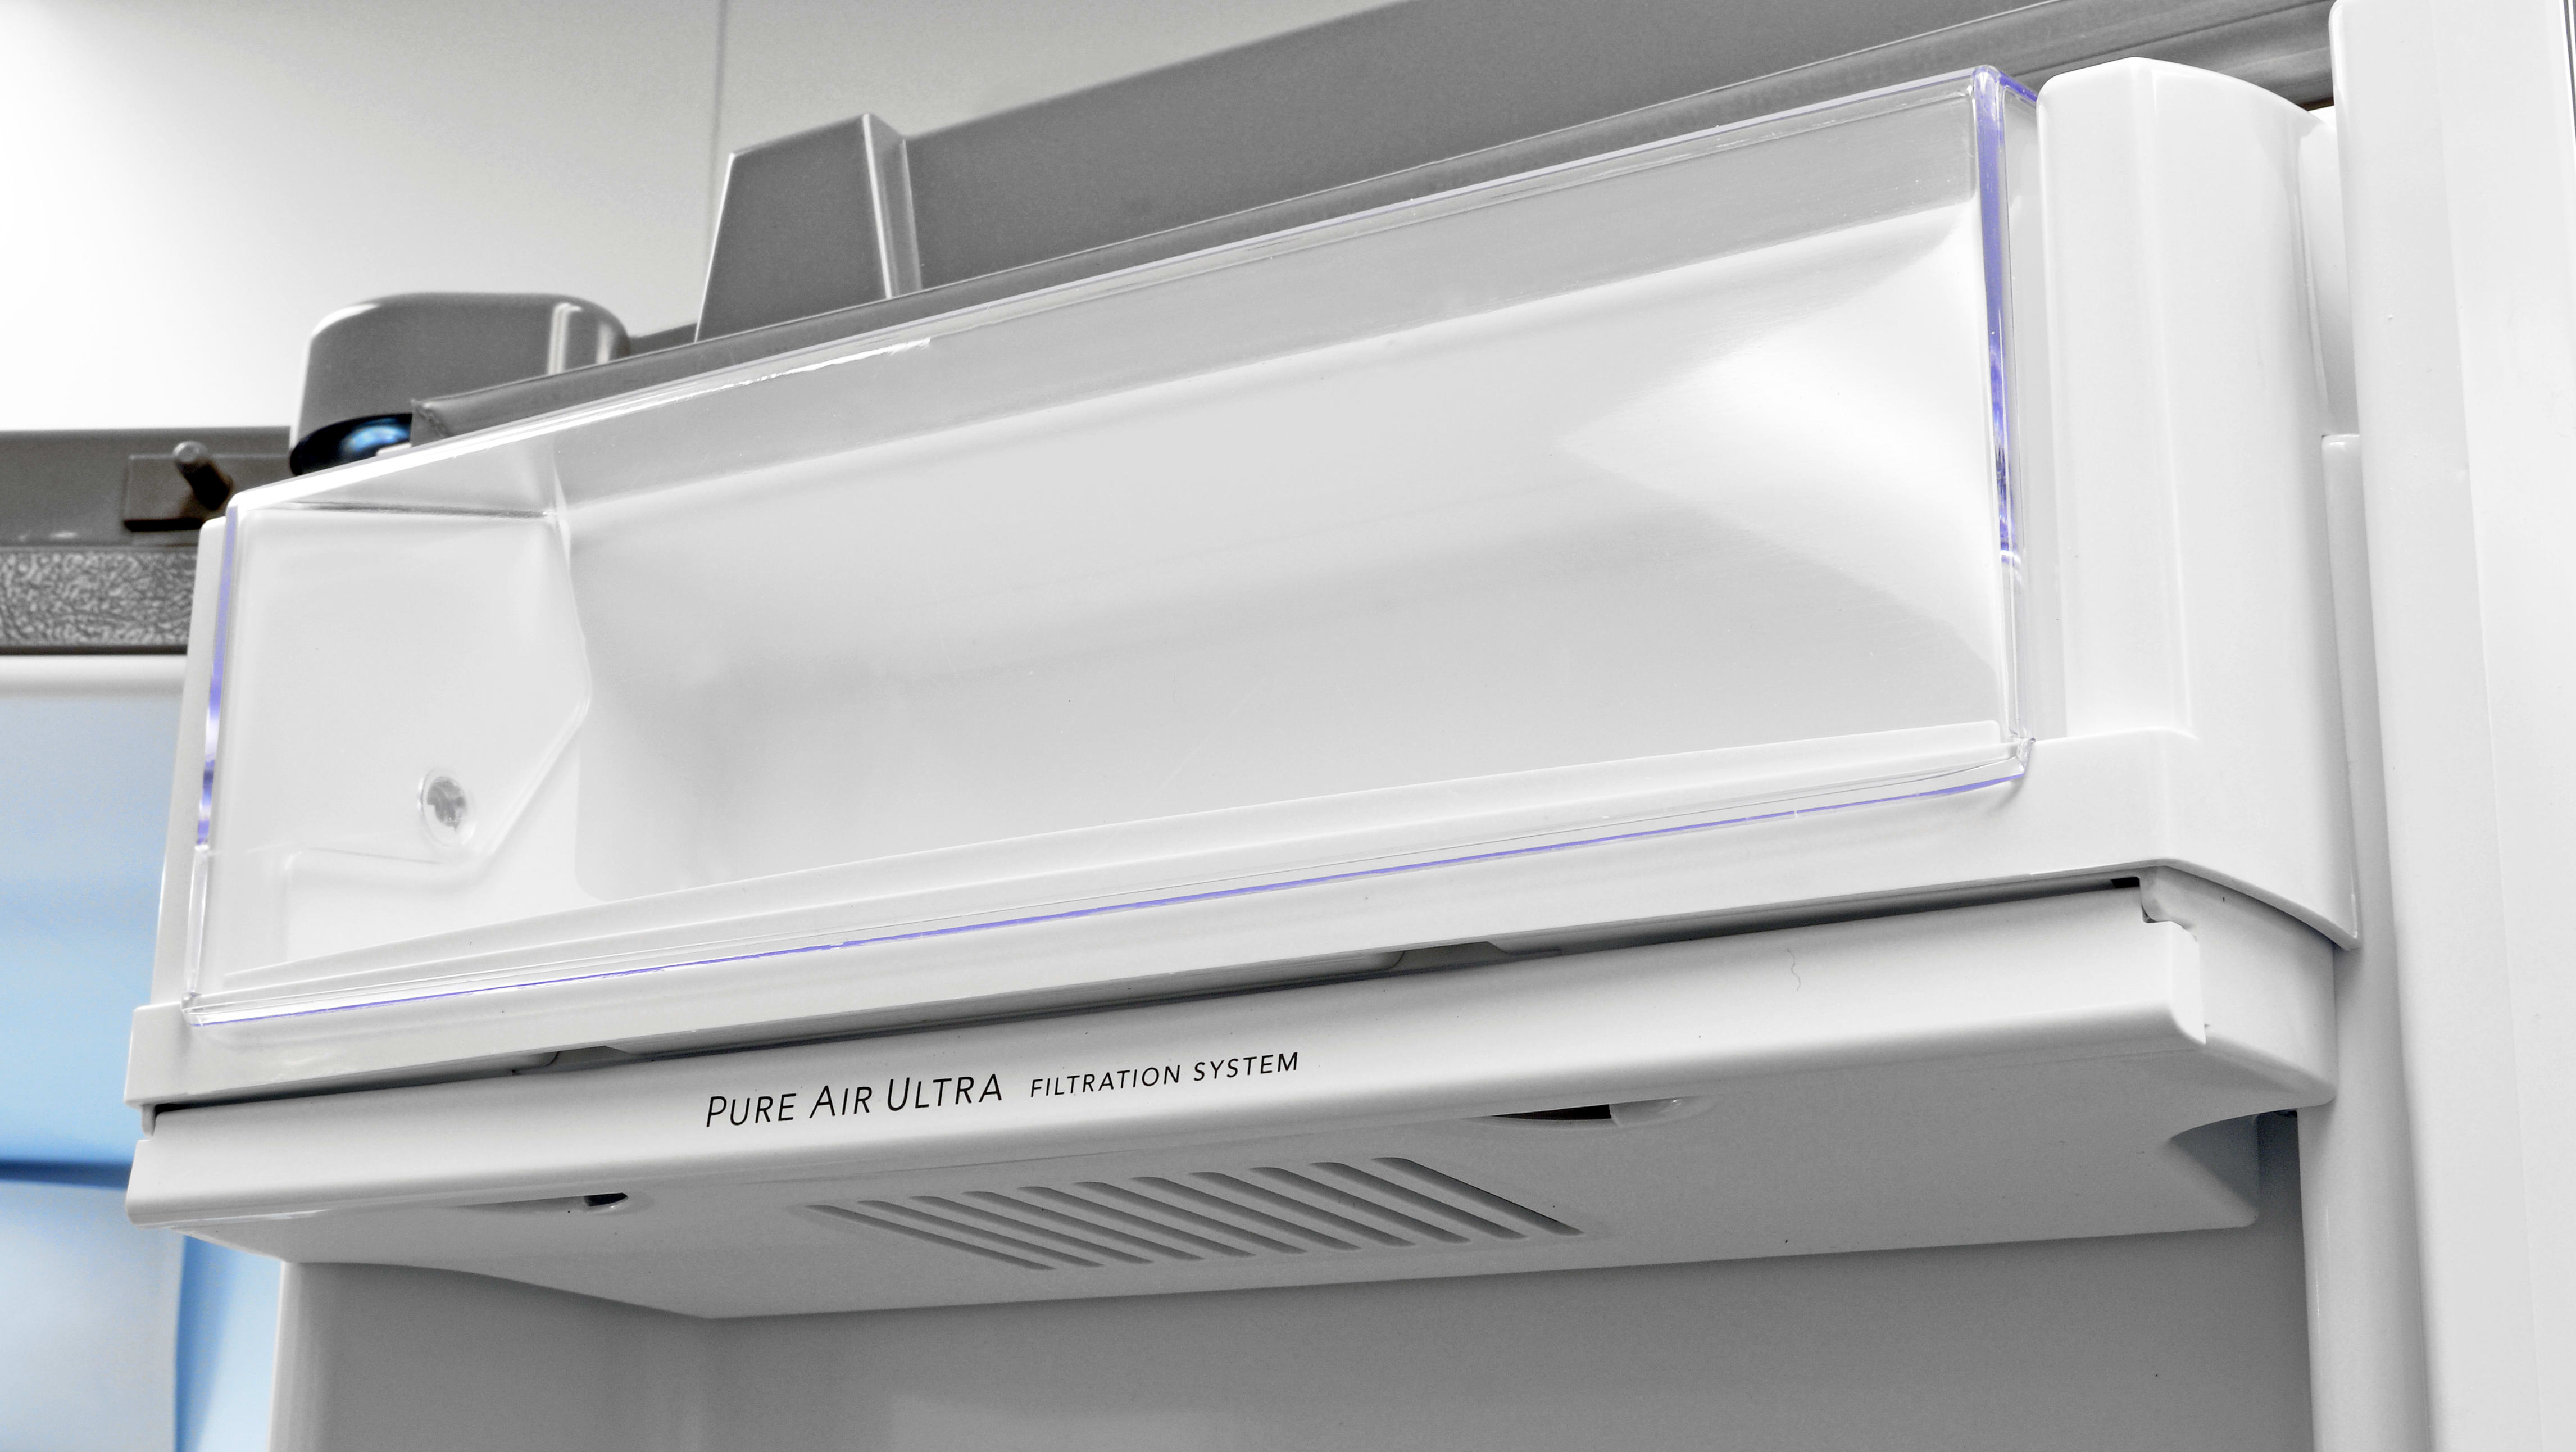 Underneath the crisper is a slot for an air filter meant to help keep the Frigidaire Professional FPBC2277RF smelling fresh.